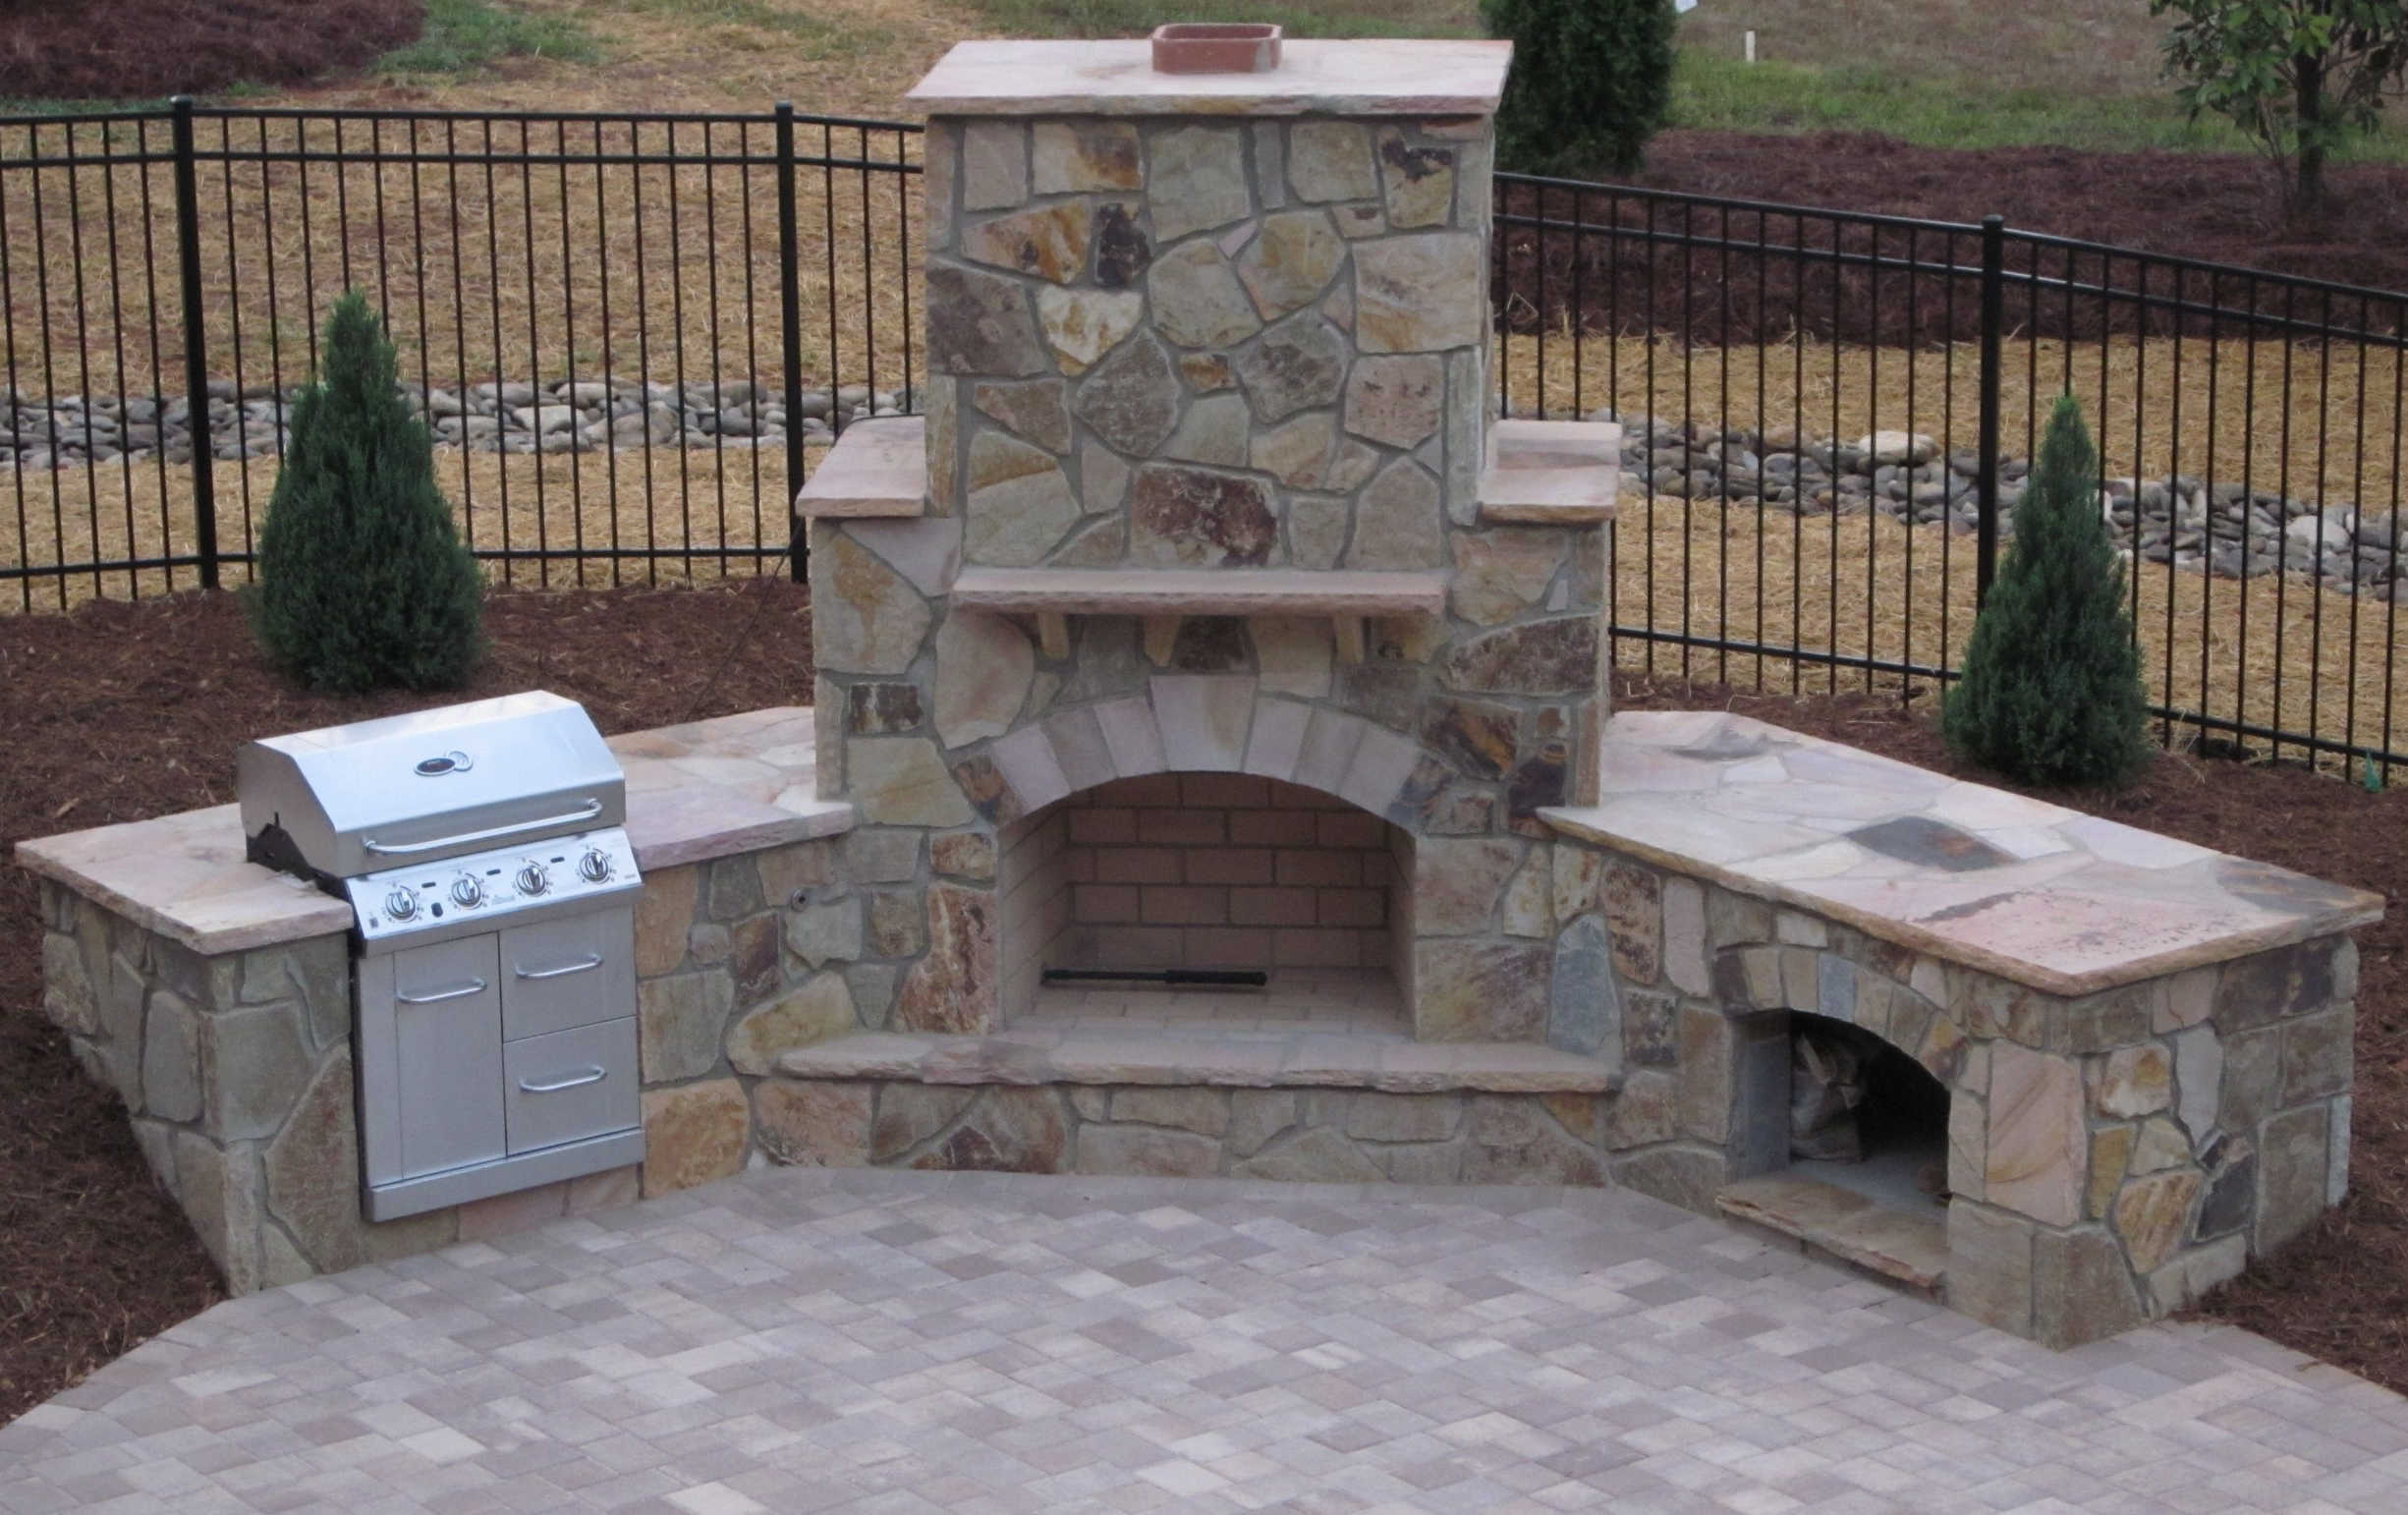 How to build an outdoor fireplace step by step guide for Outdoor fireplace plans